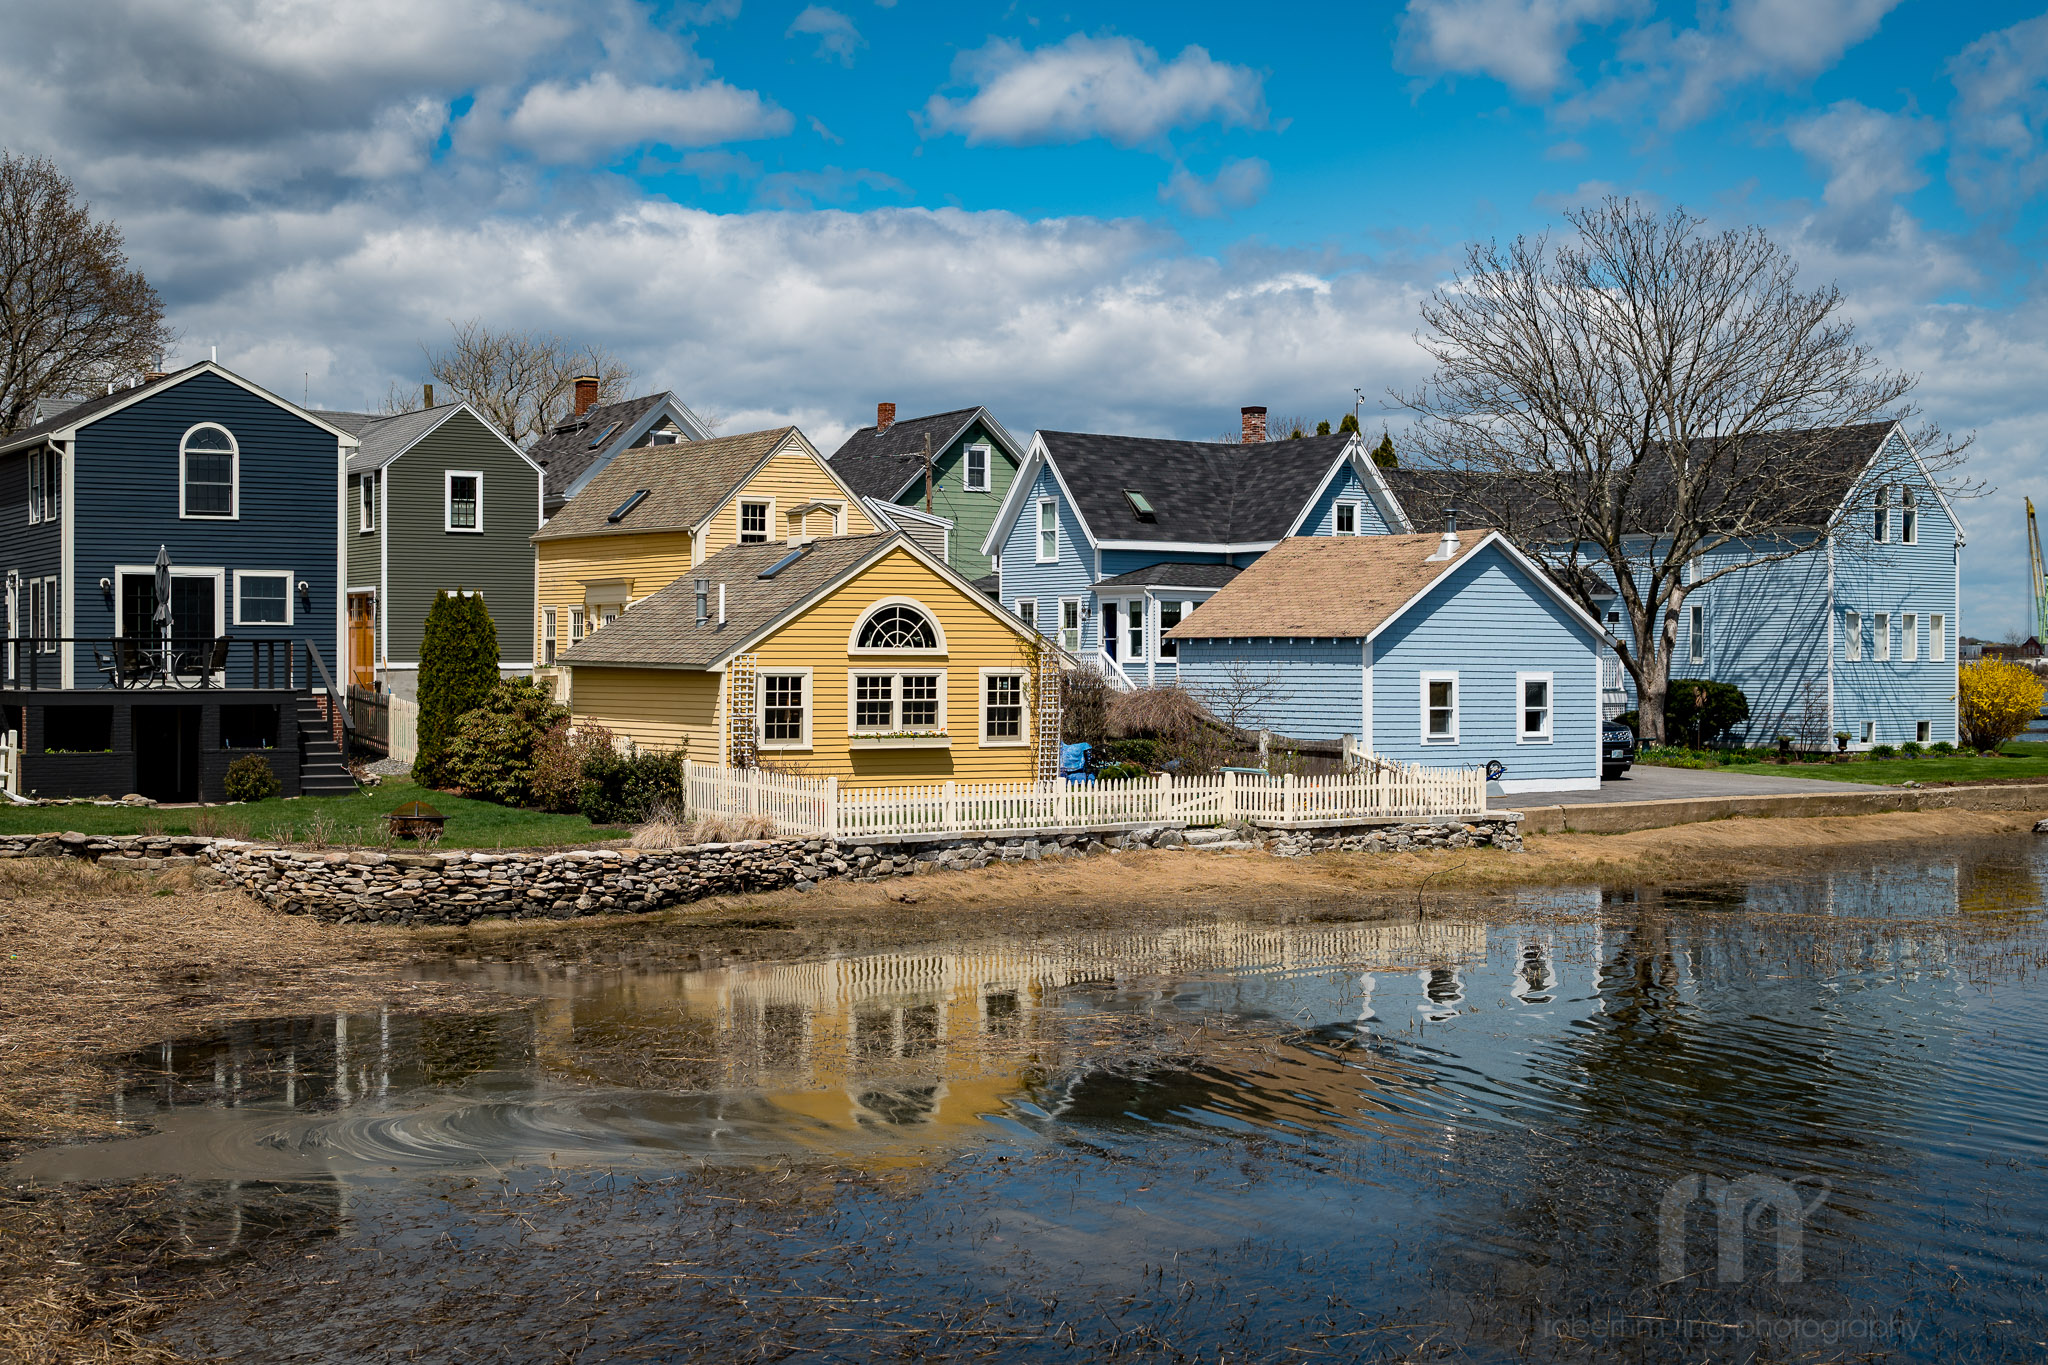 Houses In Portsmouth, NH by RMR in Regular Member Gallery